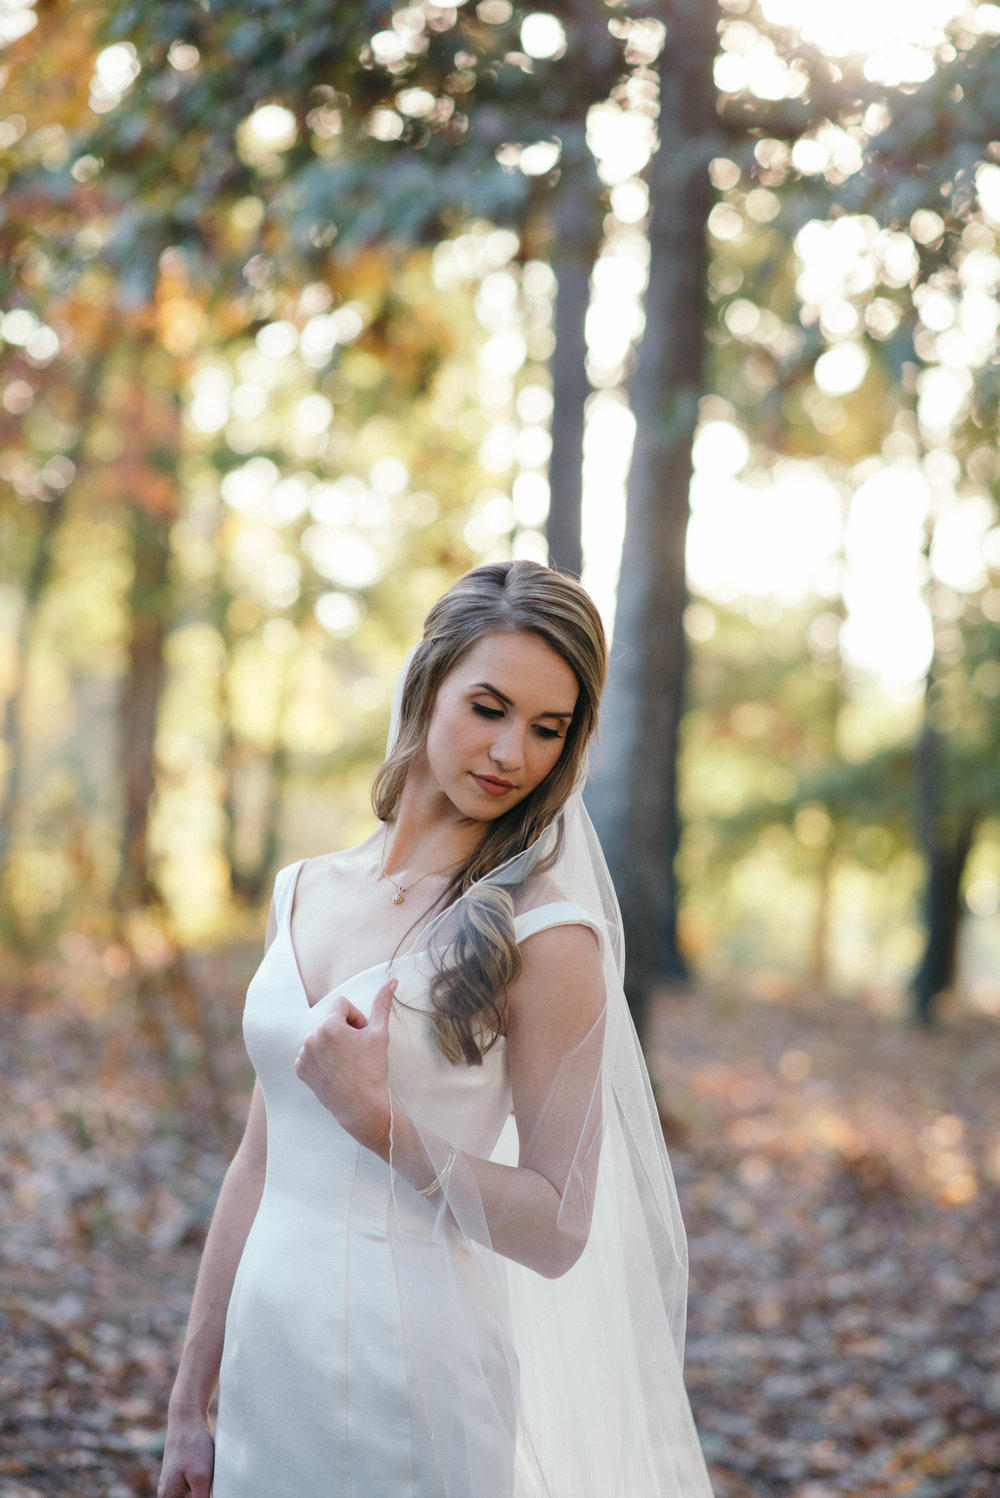 JuliaWilliams|Bridals|Color_MiraPhotographs-19.jpg